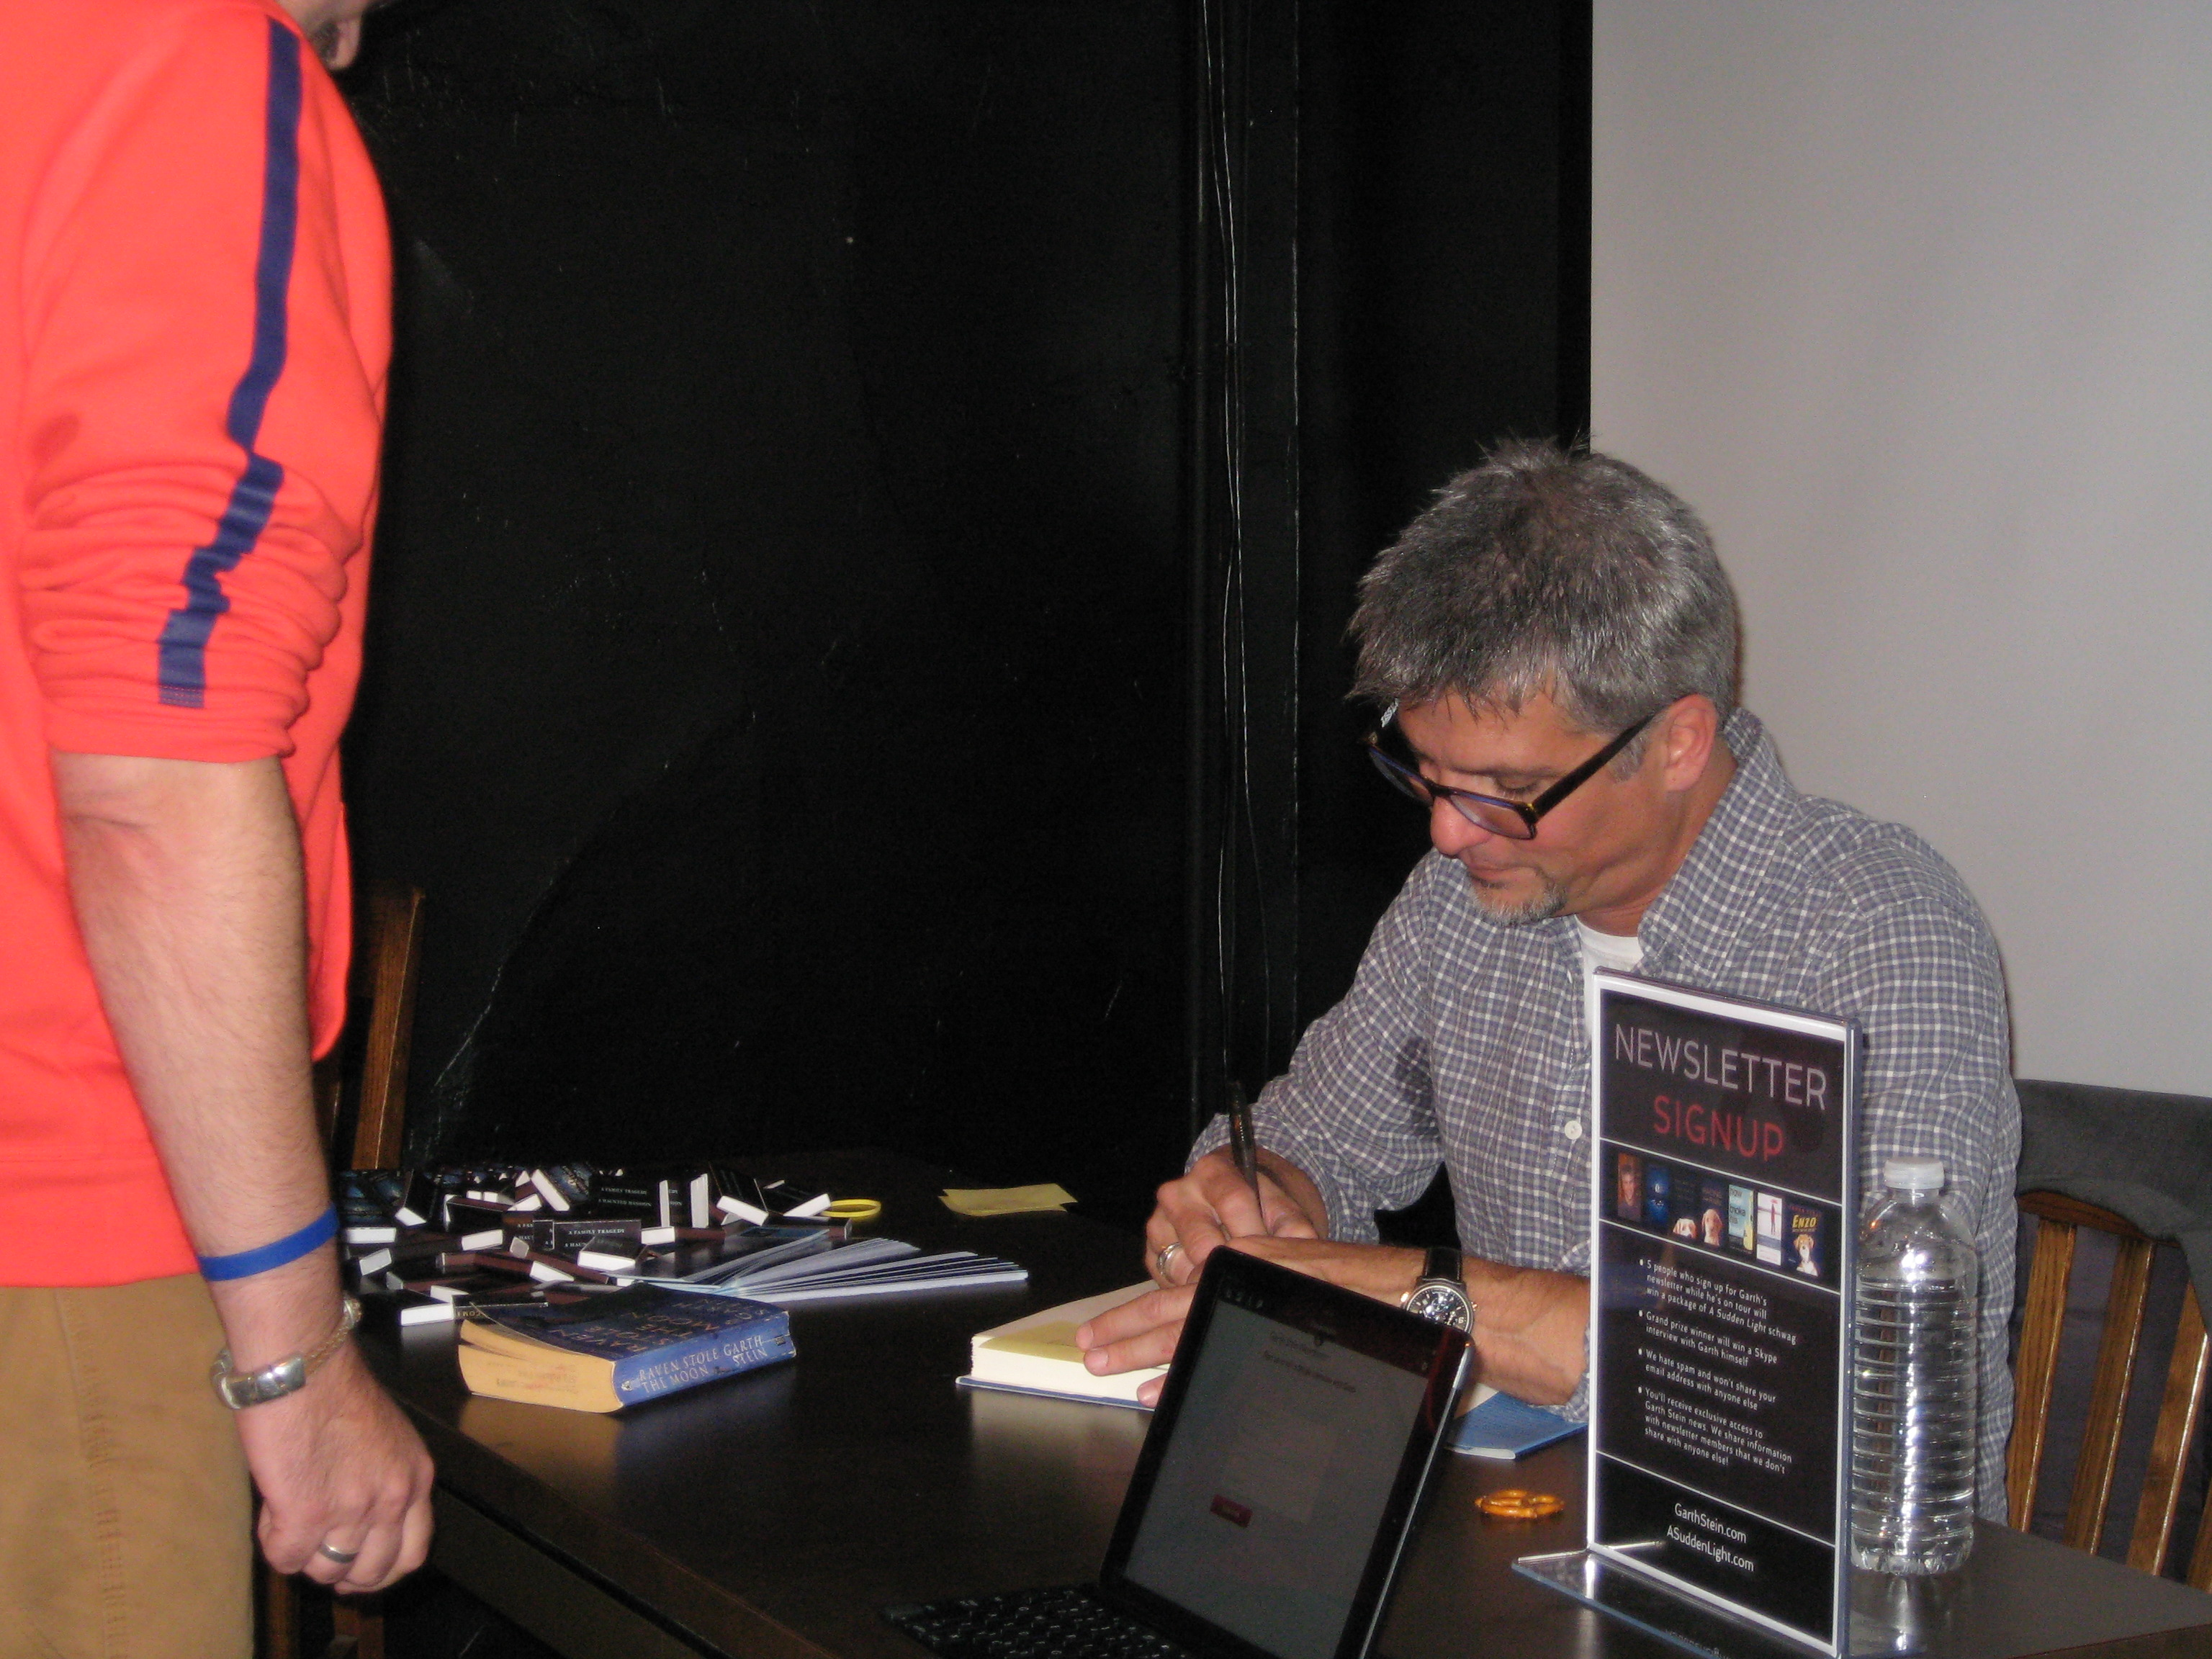 Garth Signing Books